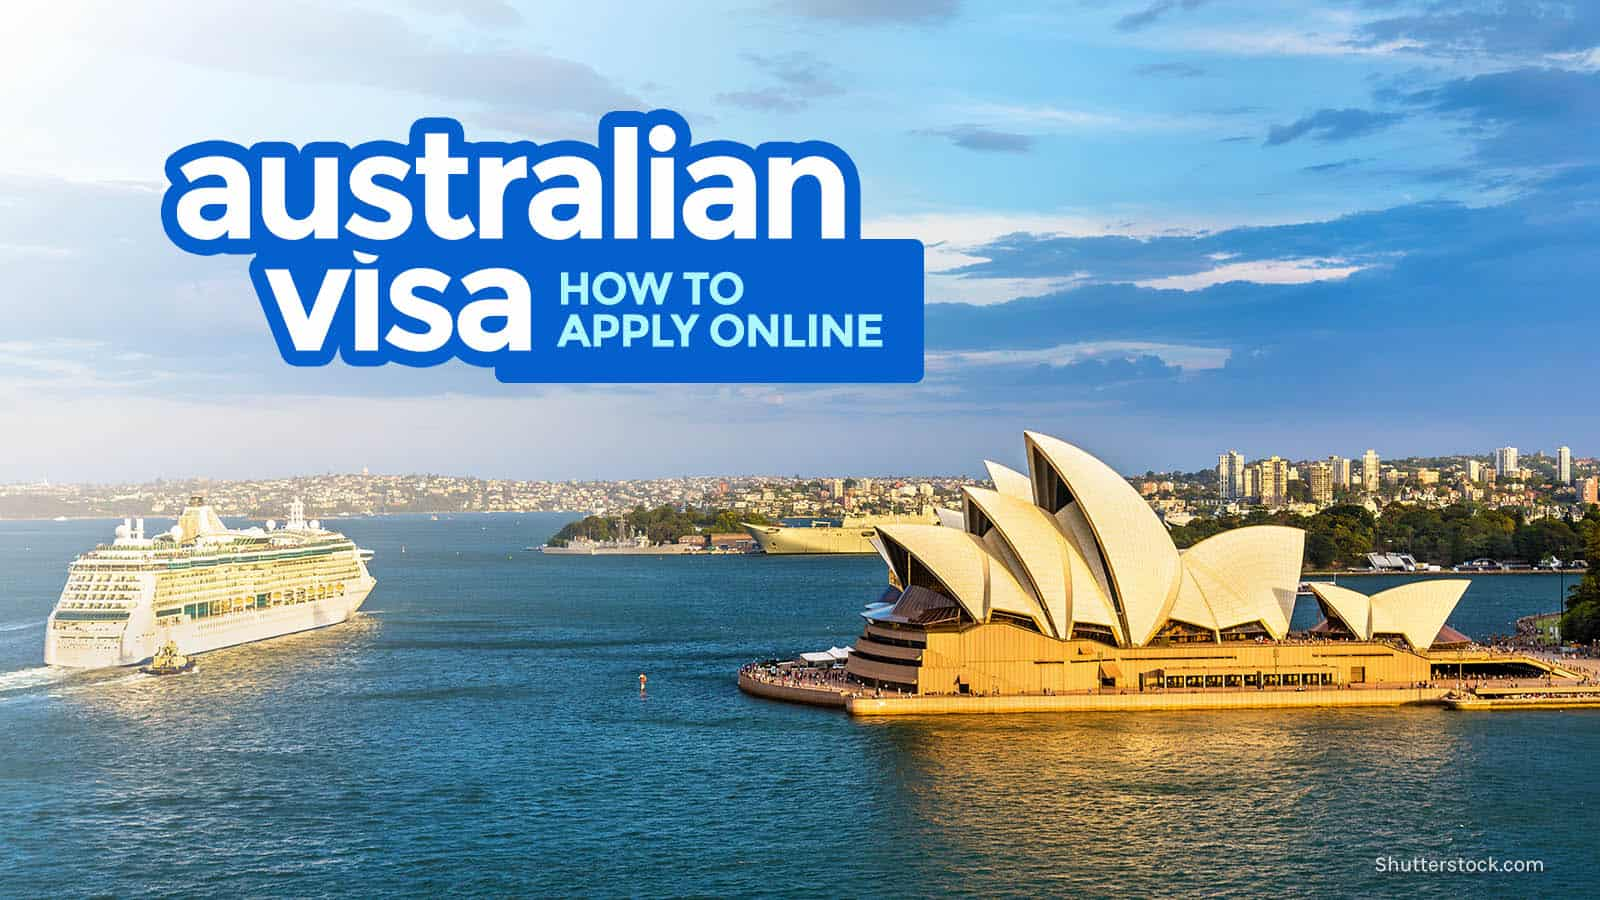 AUSTRALIAN VISA: REQUIREMENTS & ONLINE APPLICATION 2018